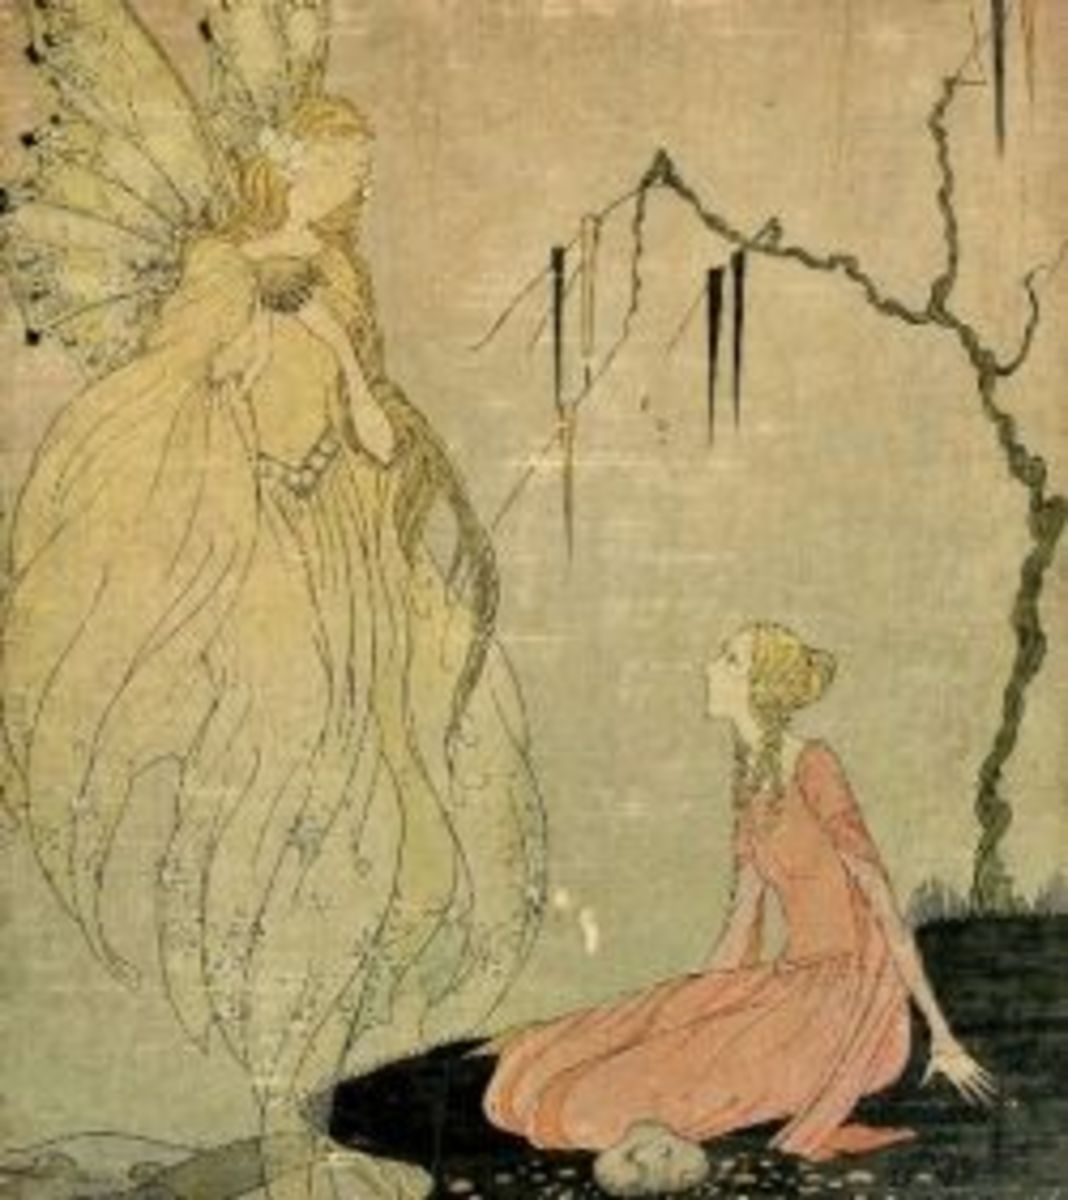 The cover page of Old French Fairy Tales, illustrated by Virginia Frances Sterrett